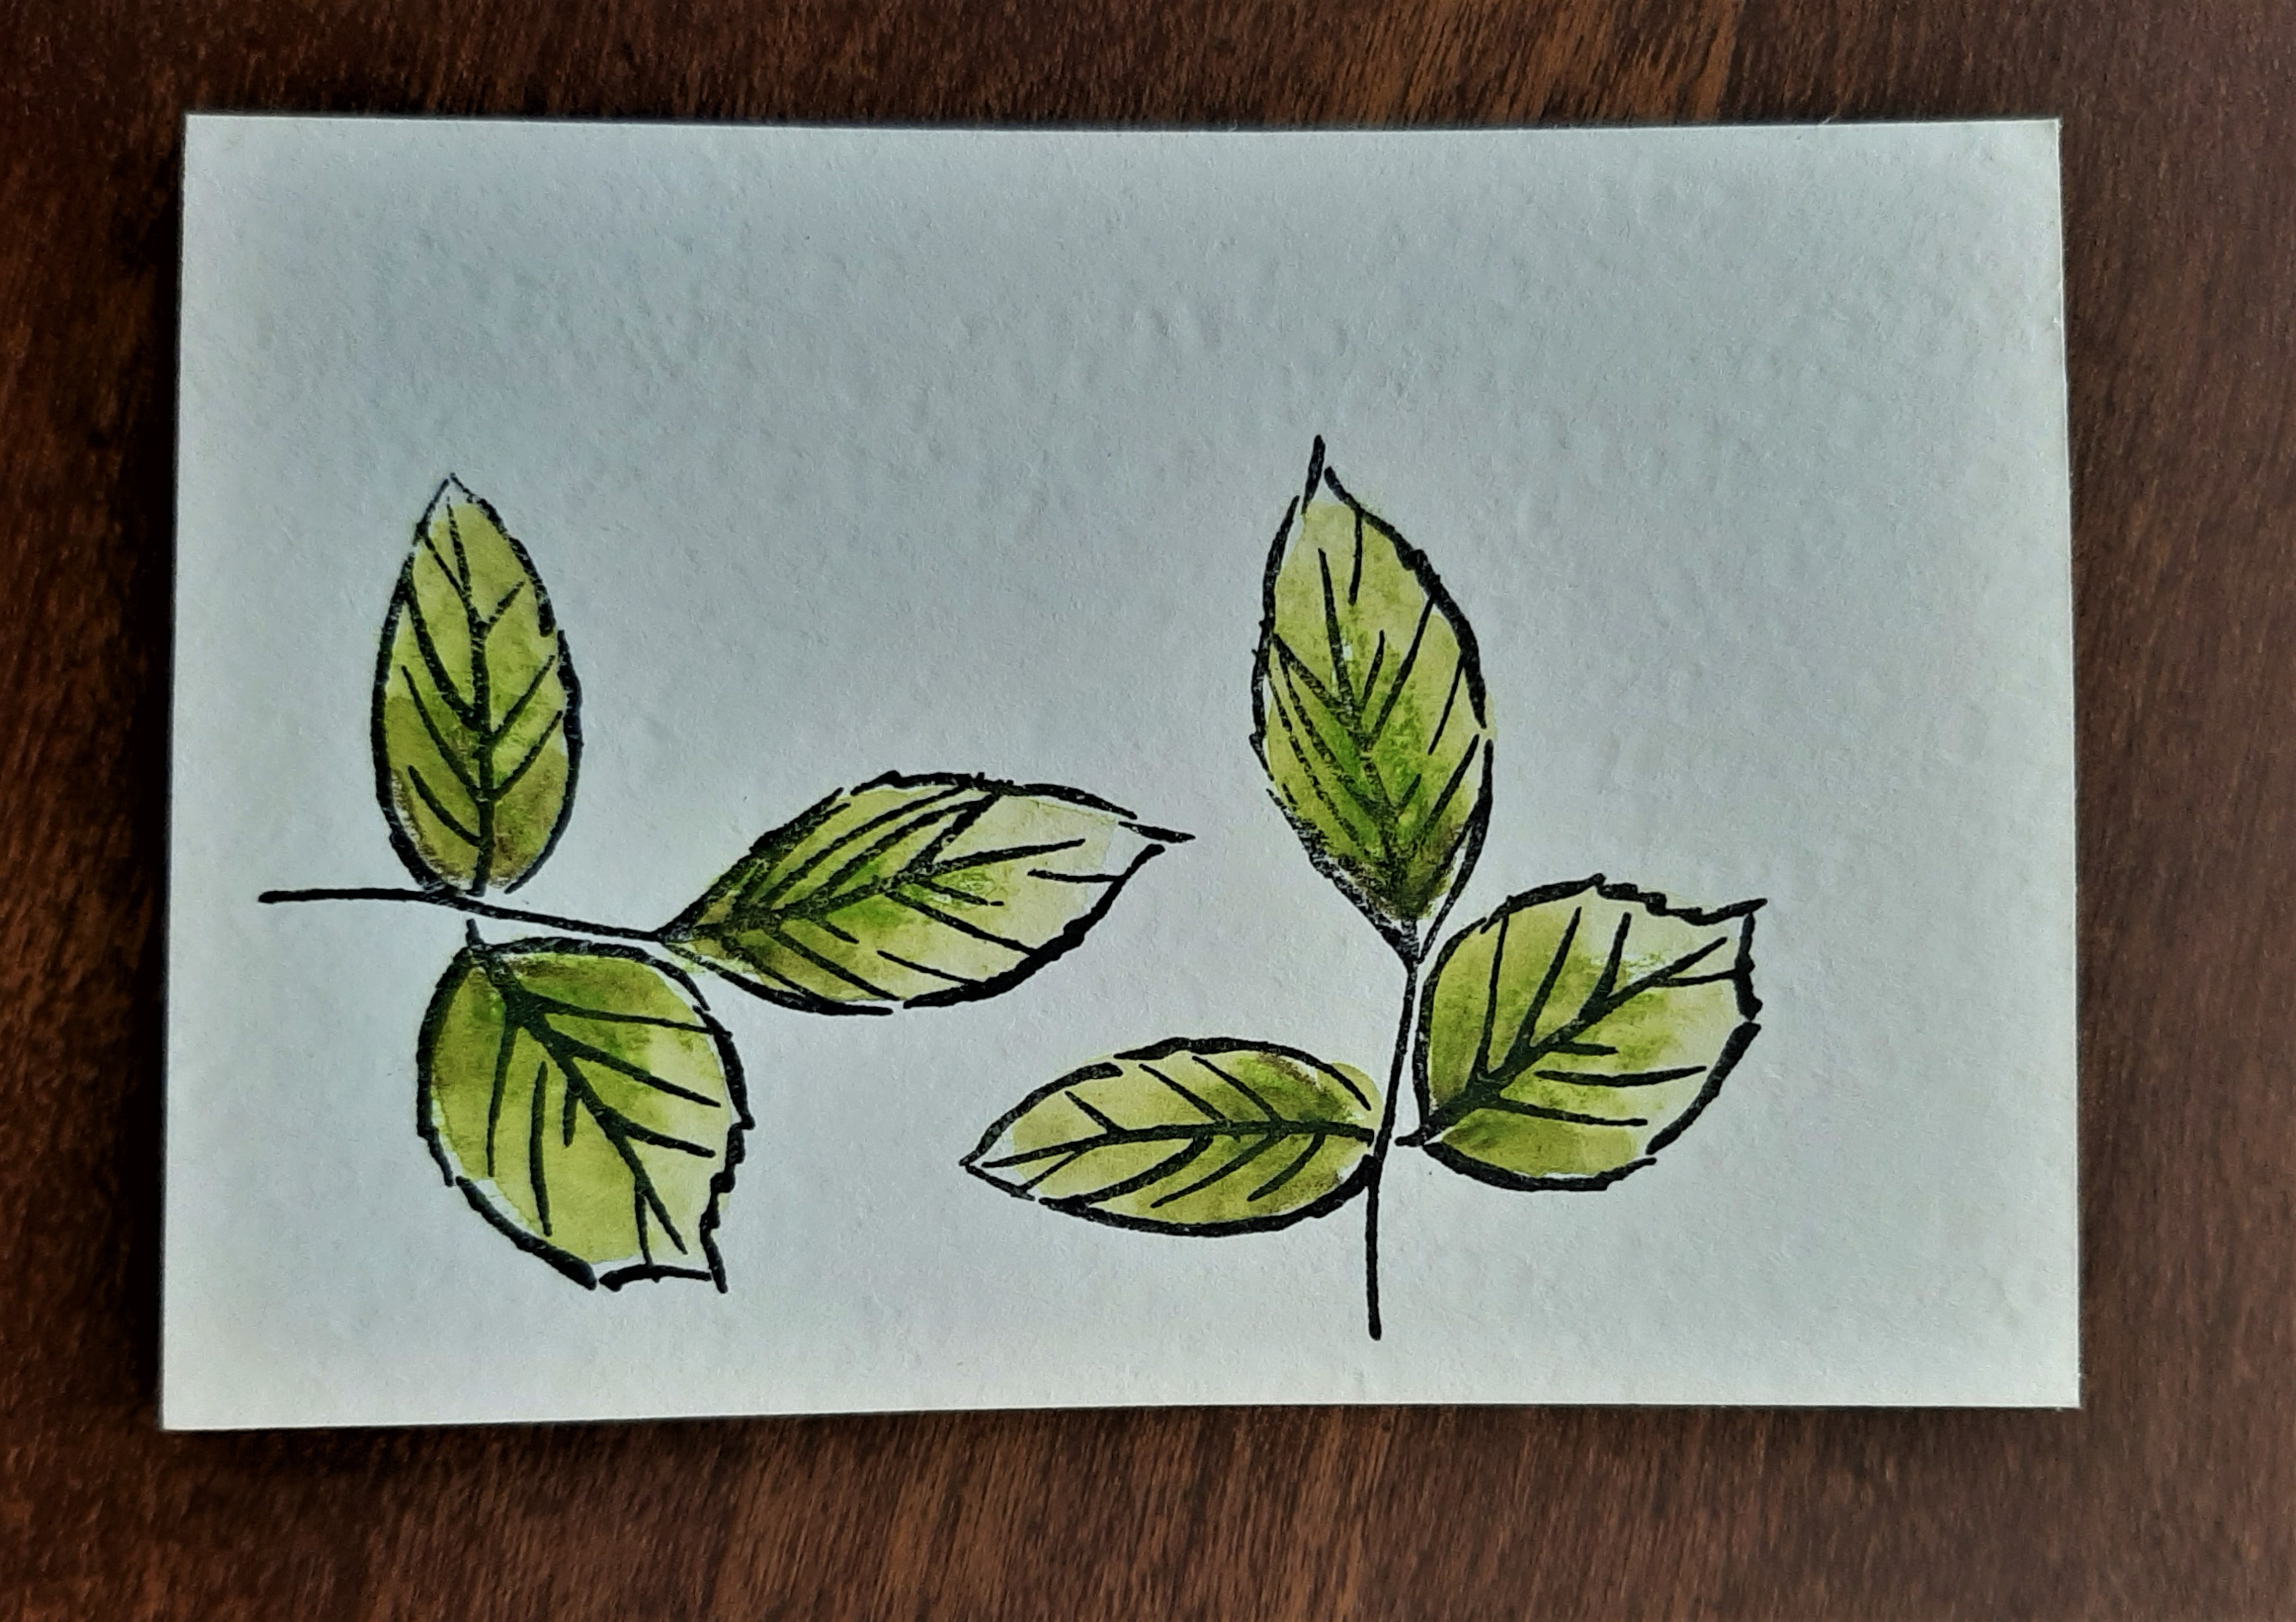 watercolor tip - to a wild rose leaves